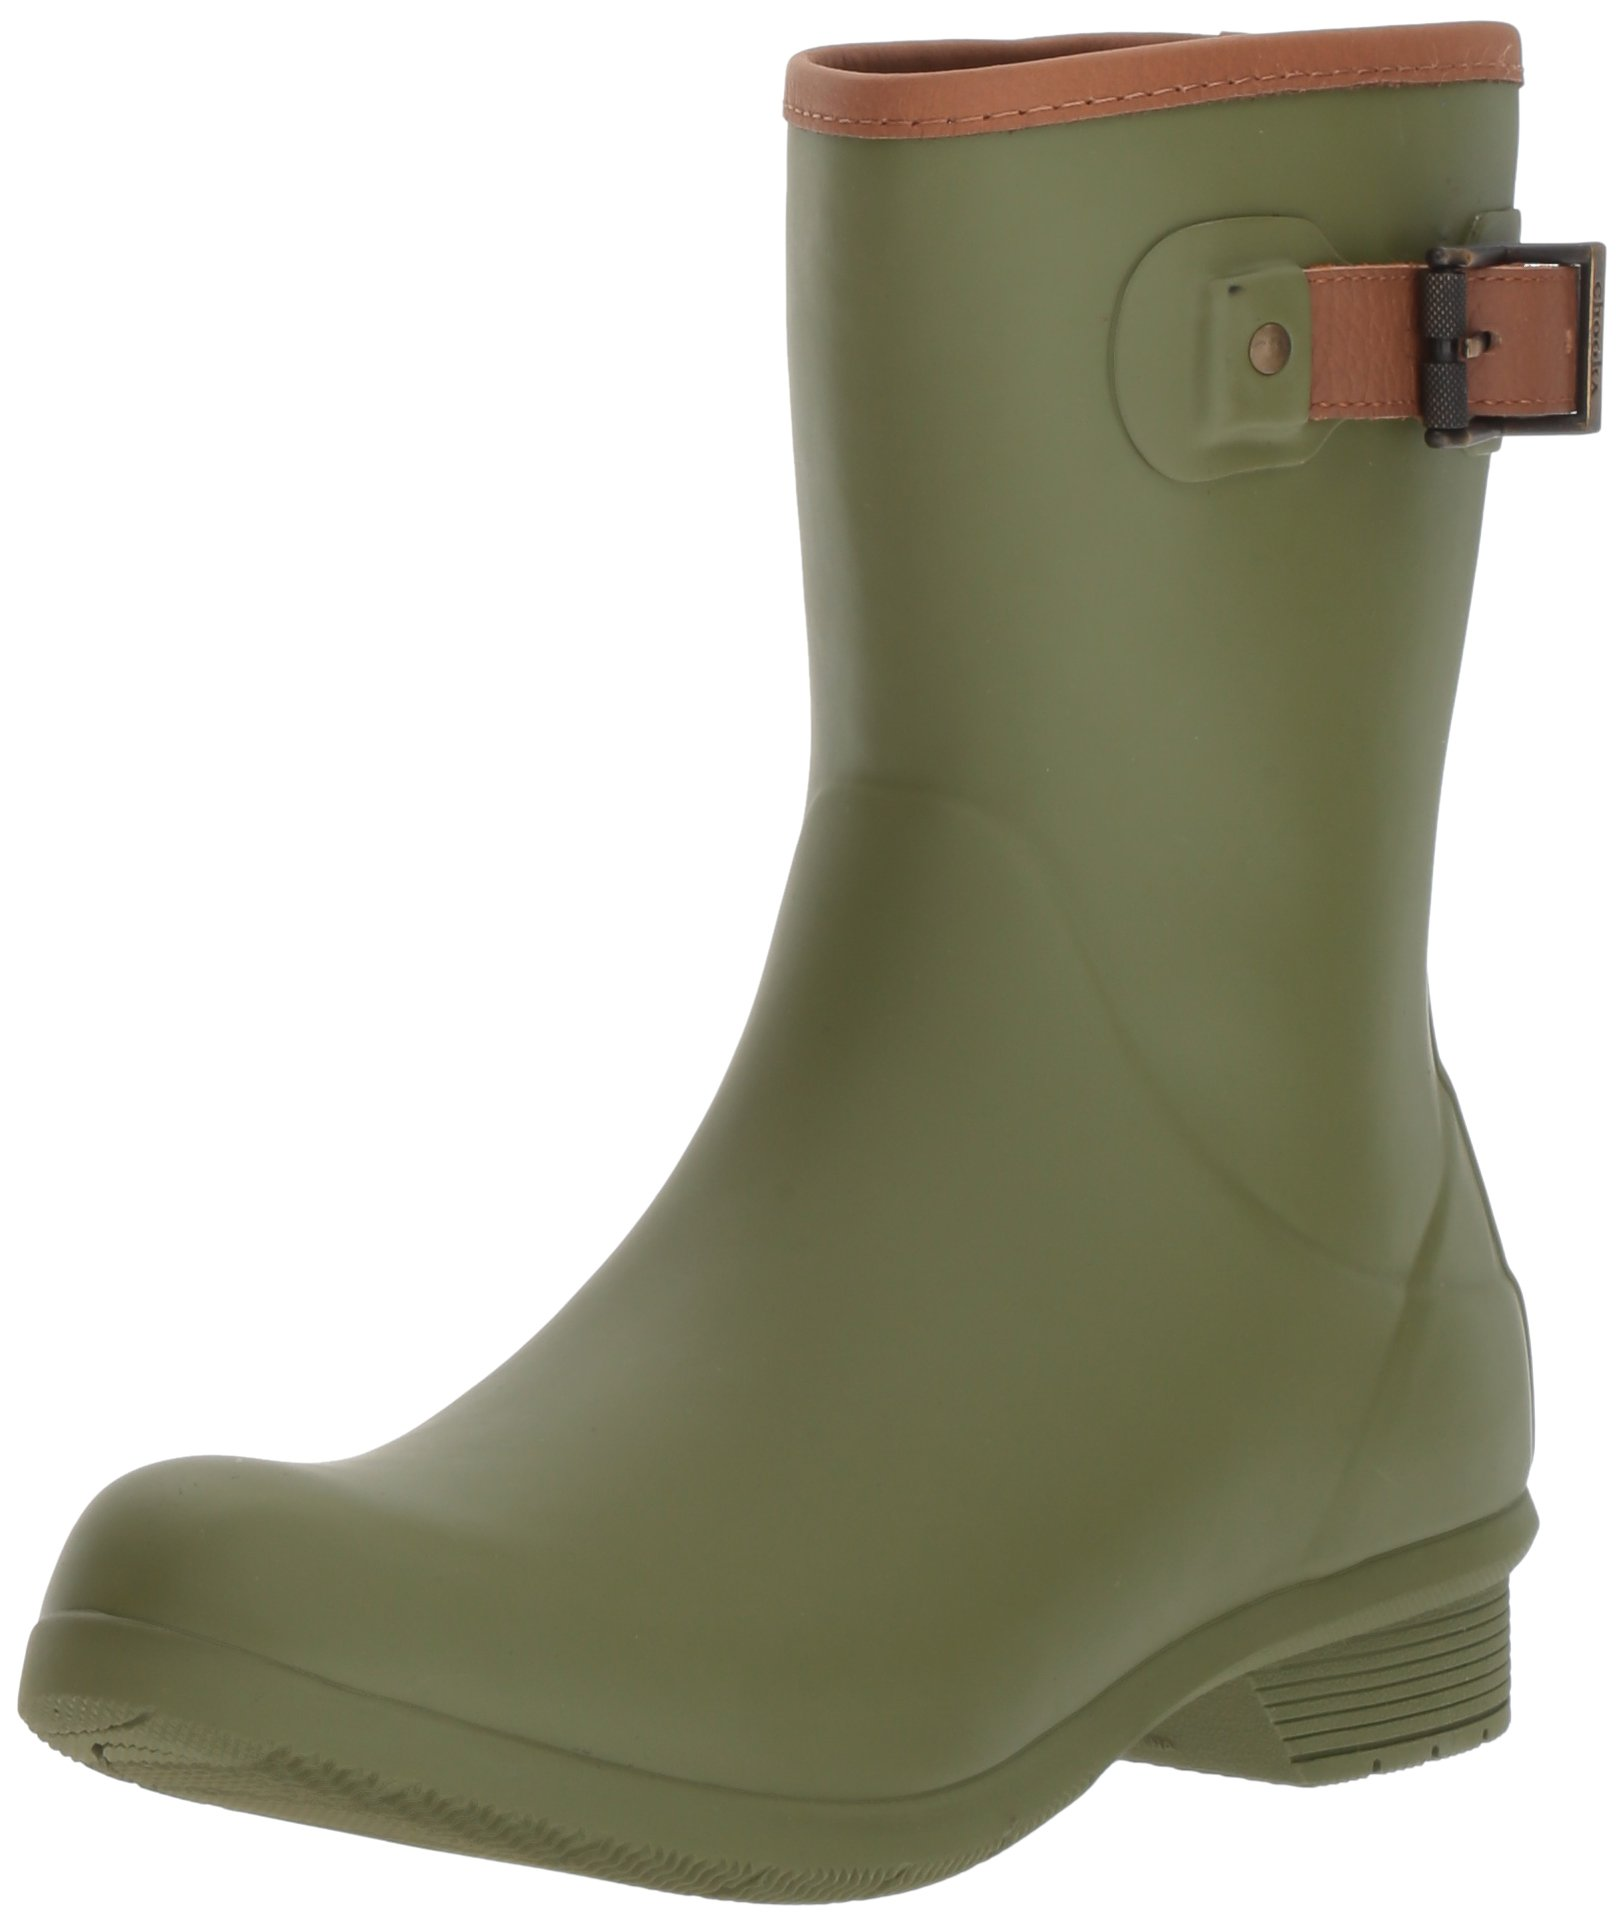 Chooka Women's Mid-Height Memory Foam Rain Boot, Olive, 9 M US by Chooka (Image #1)